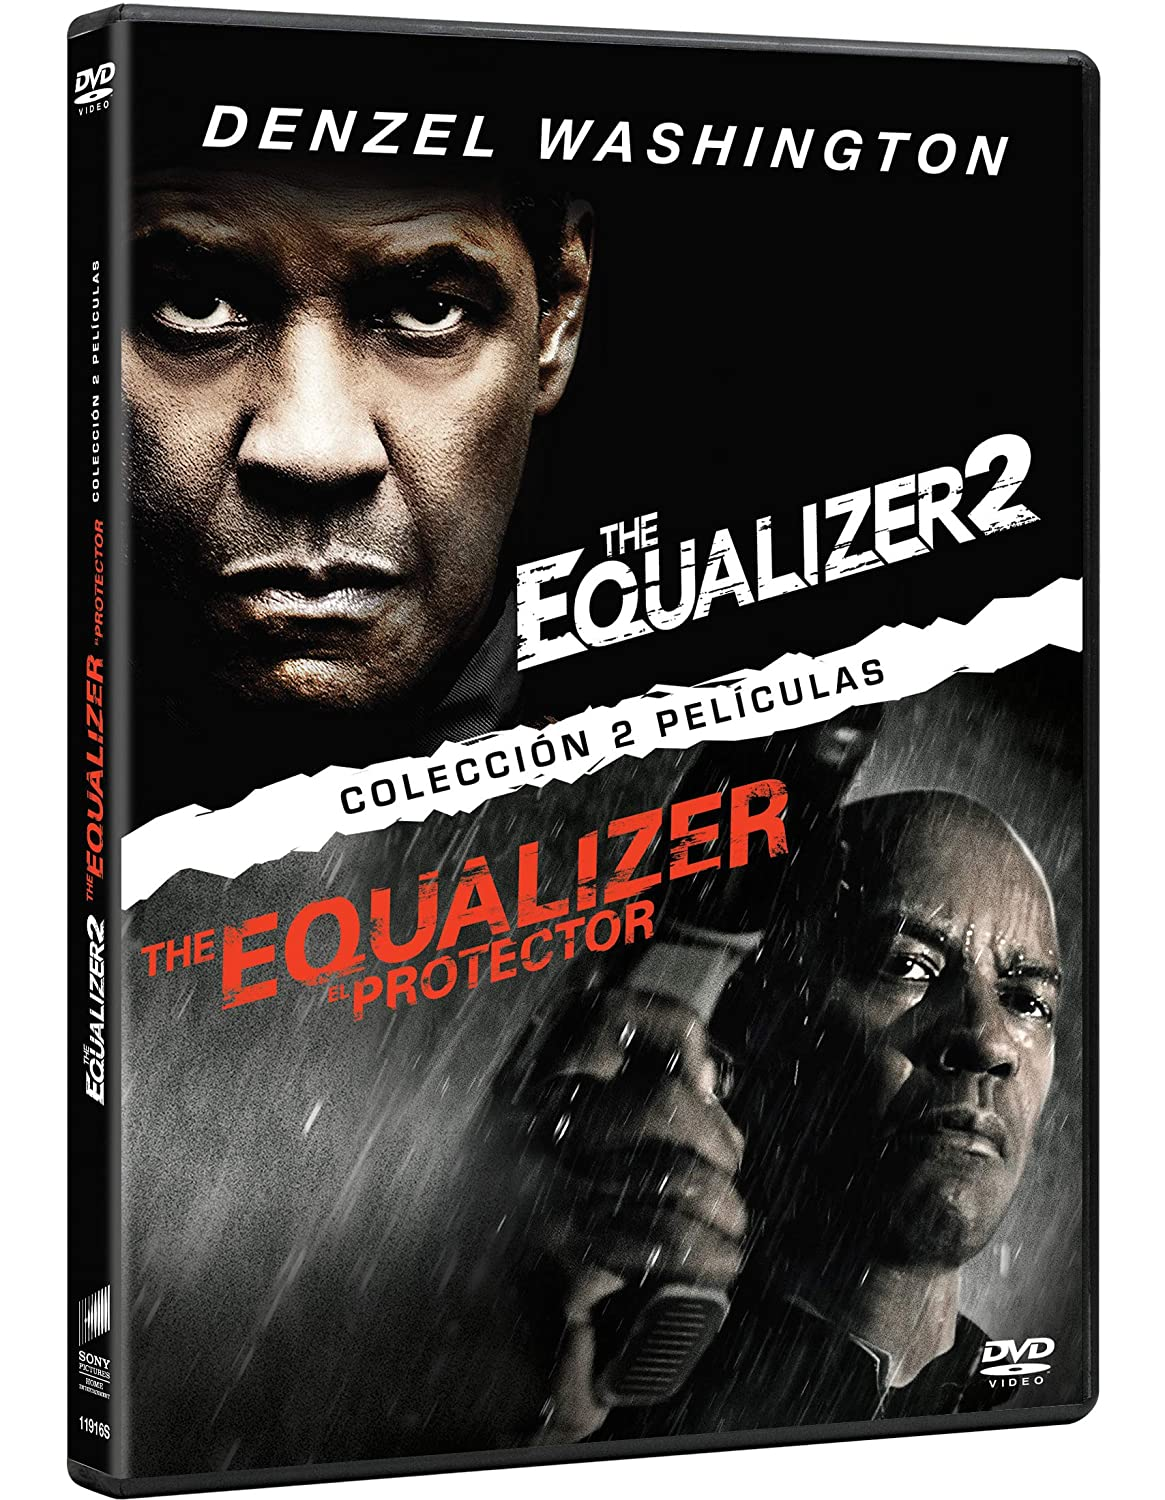 Pack: The Equalizer 1 + The Equalizer 2 [DVD]: Amazon.es: Denzel Washington, Pedro Pascal, Ashton Sanders, Bill Pullman, Melissa Leo, Marton Csokas, Chloë Grace Moretz, Antoine Fuqua, Denzel Washington, Pedro Pascal, Columbia